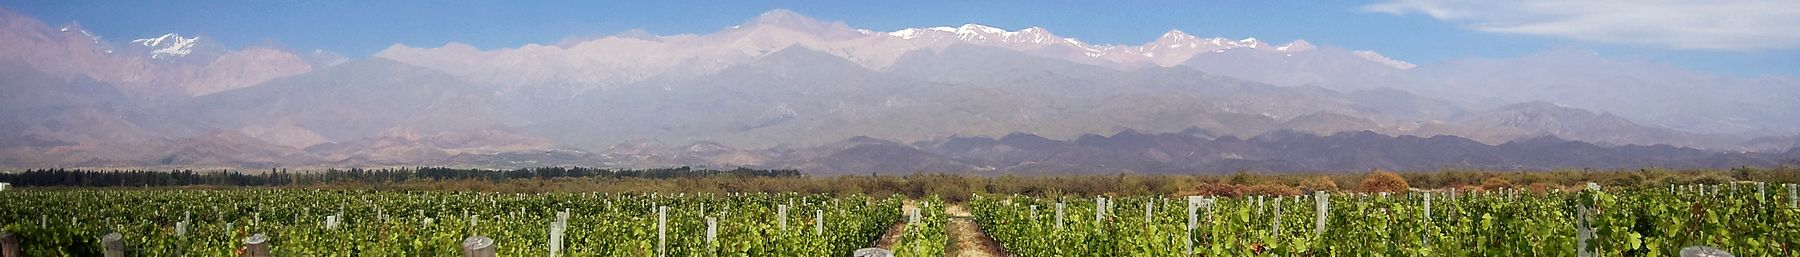 Mendoza banner vineyards.jpg